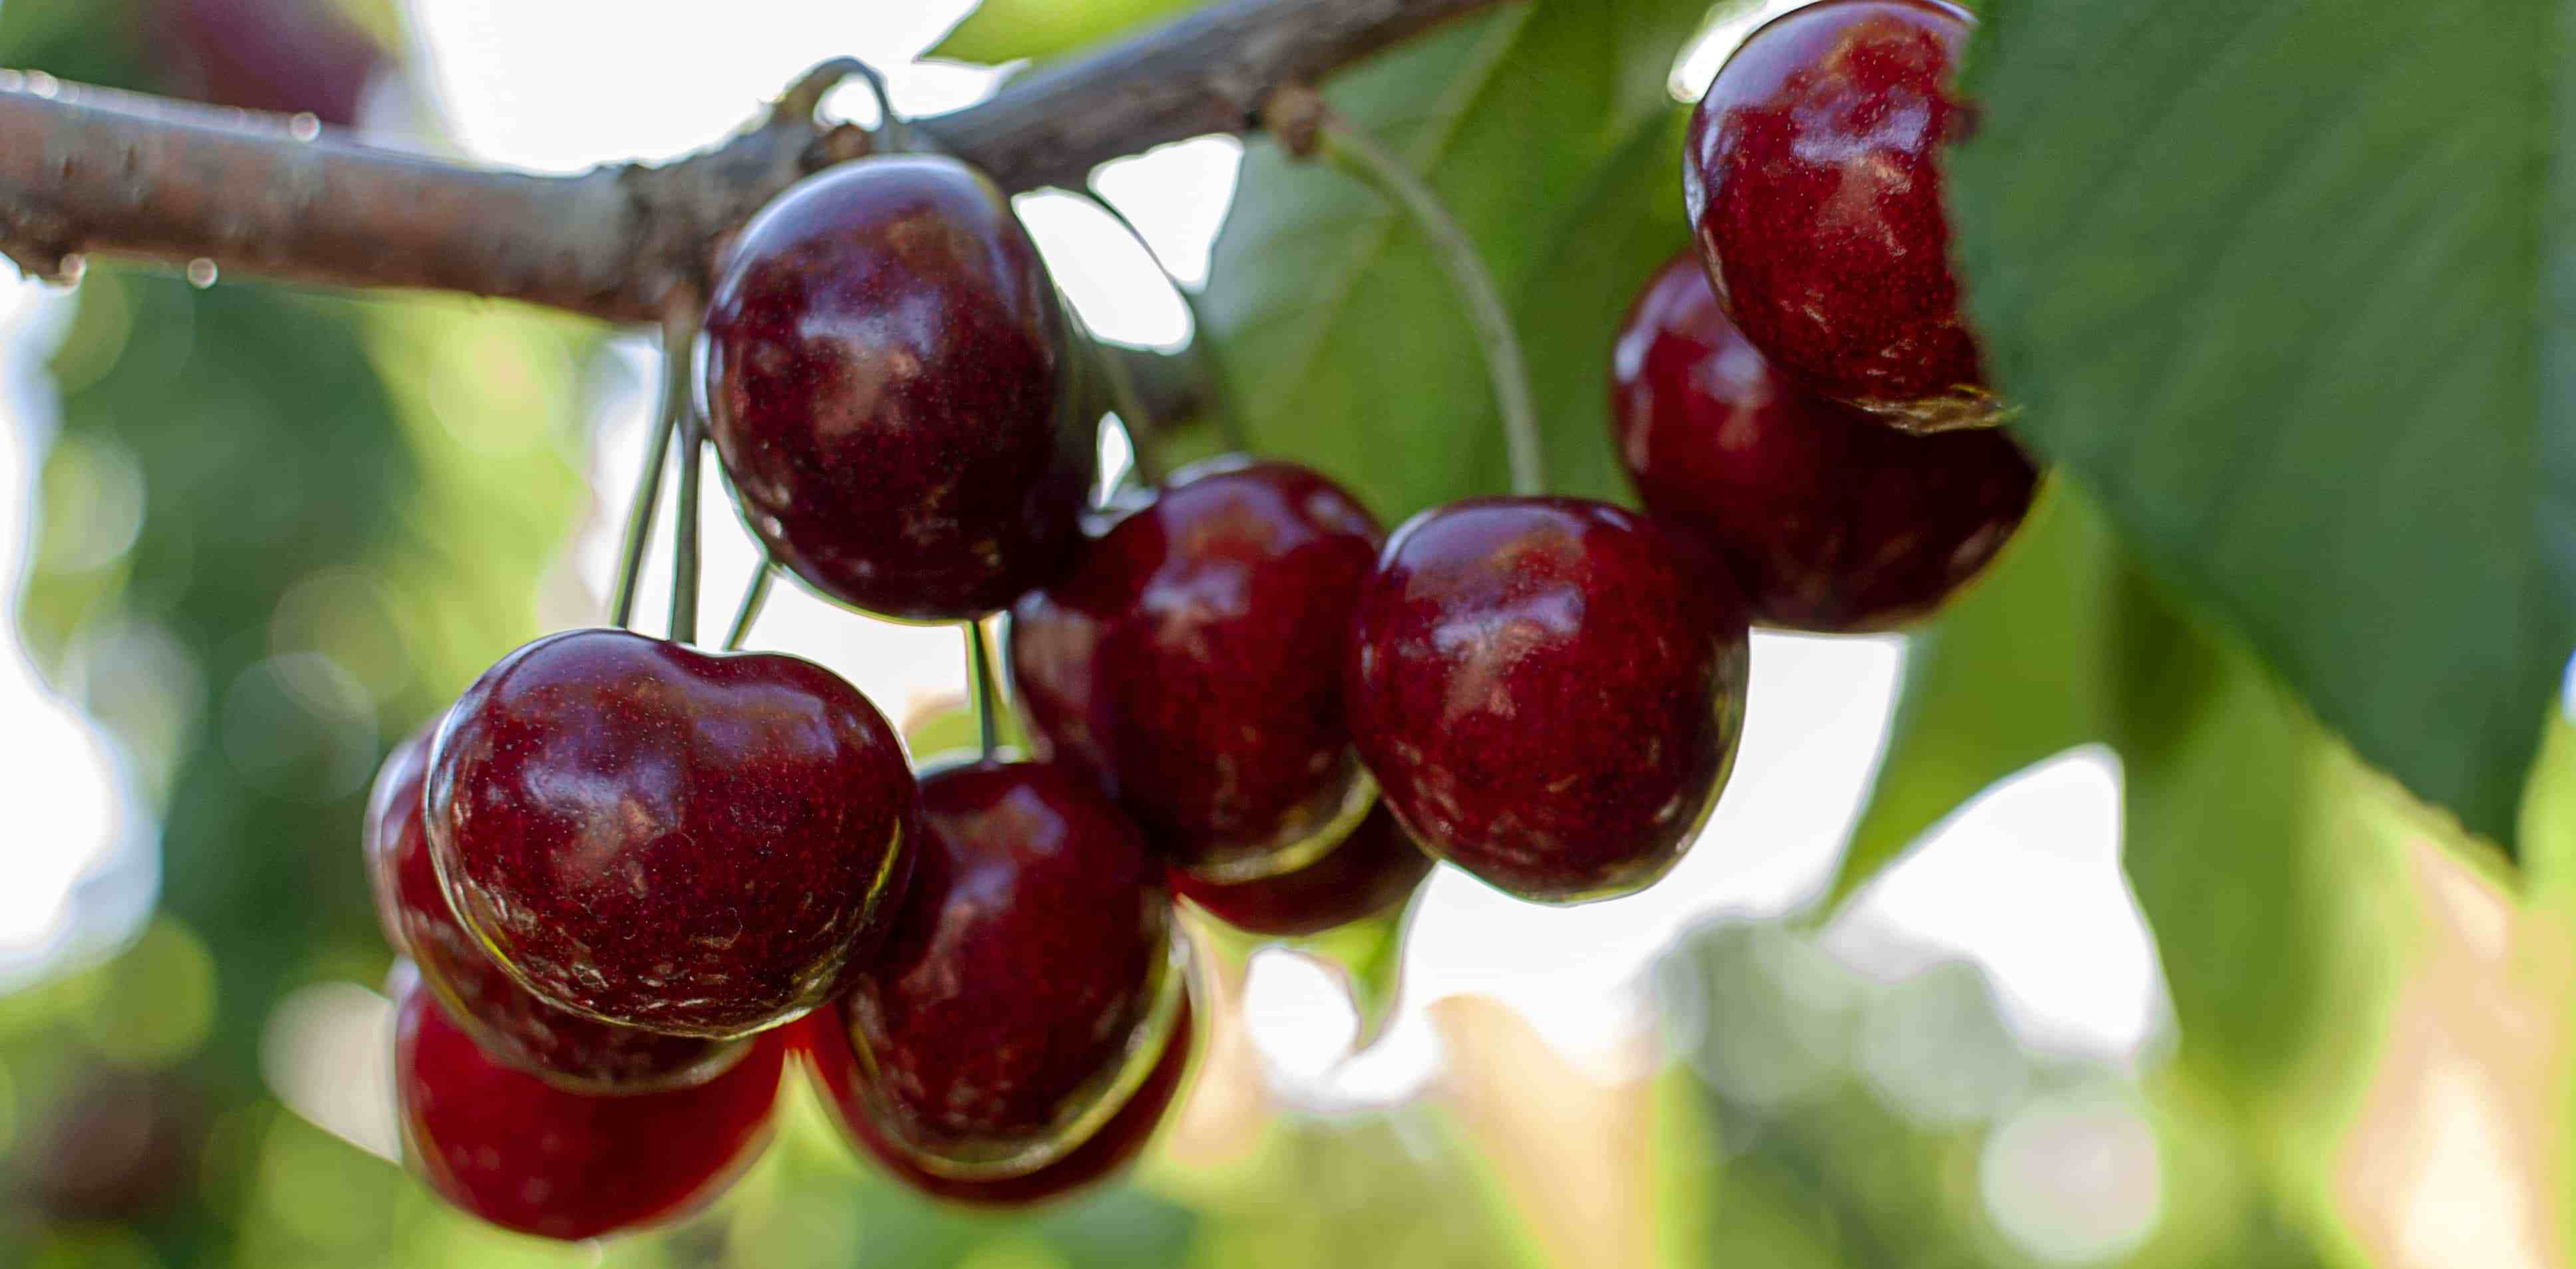 bigstock-big-red-cherries-with-leaves-a-304585810.jpg